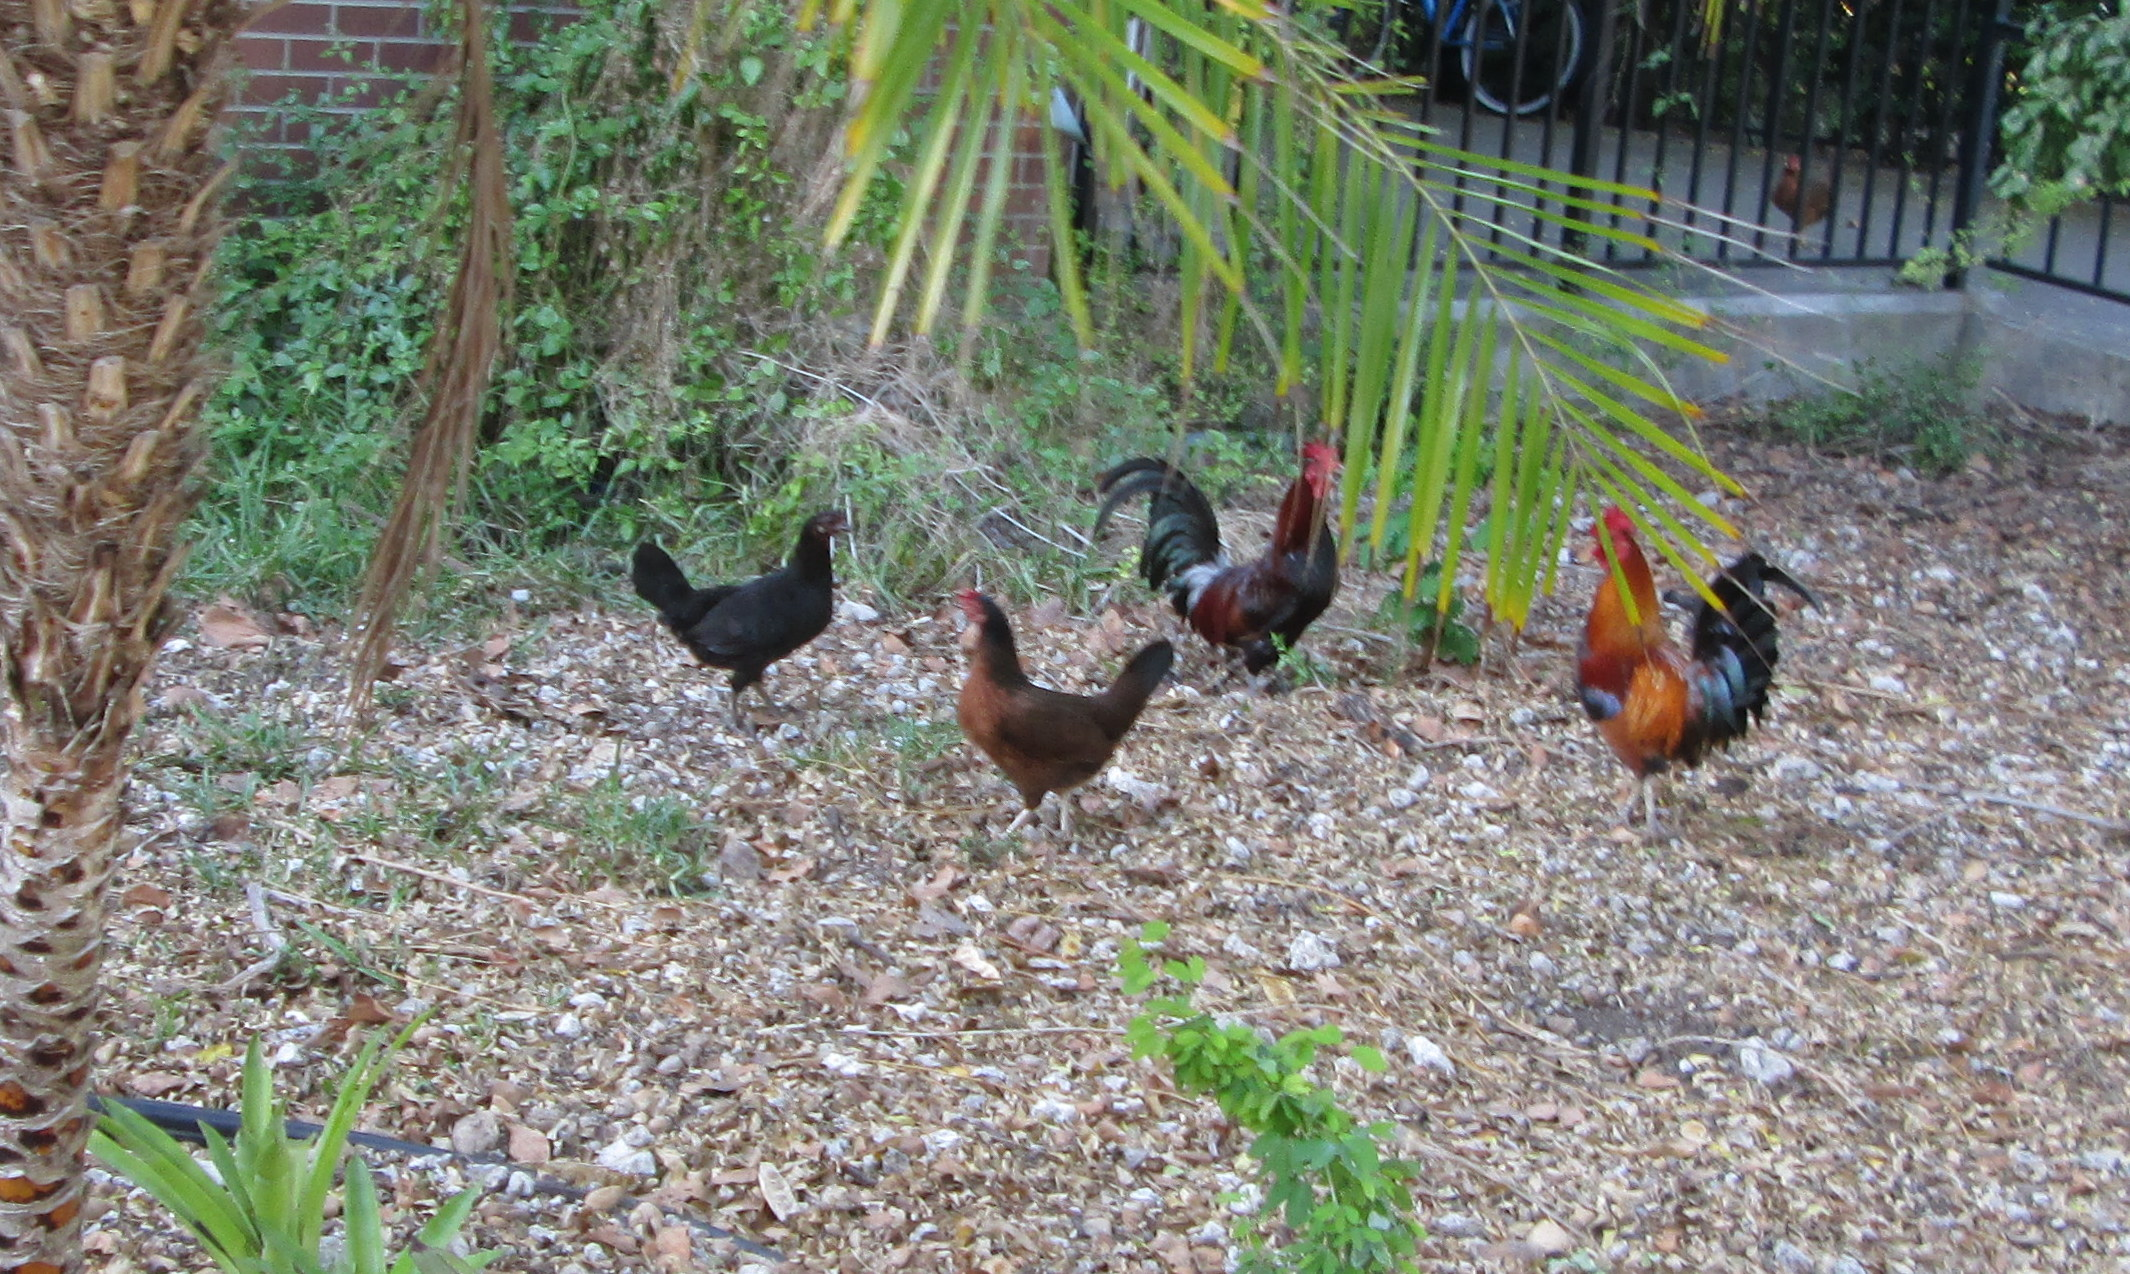 ... Chickens in Key West - Counting My ChickensCounting My Chickens